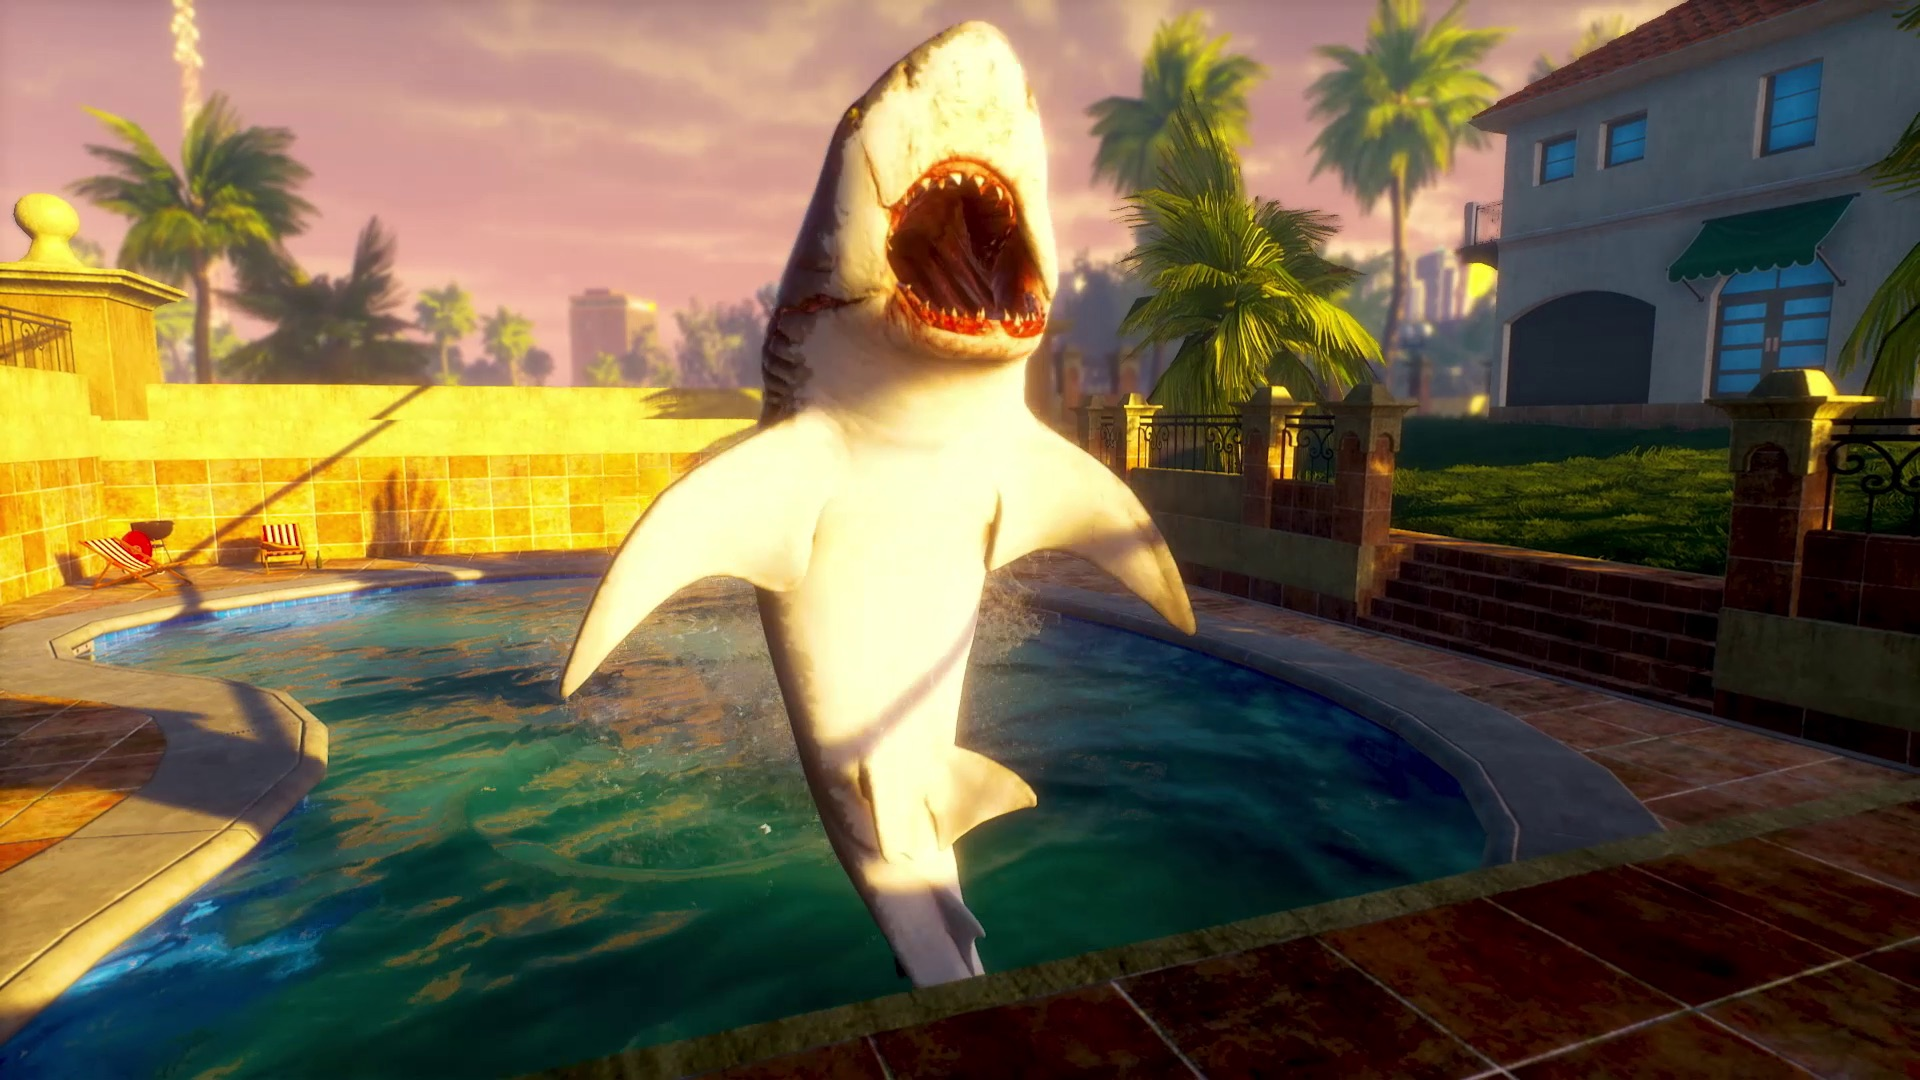 The protagonist of Maneater, a medium sized shark, balances in a swimming pool on its bottom fins, mouth open and wide.